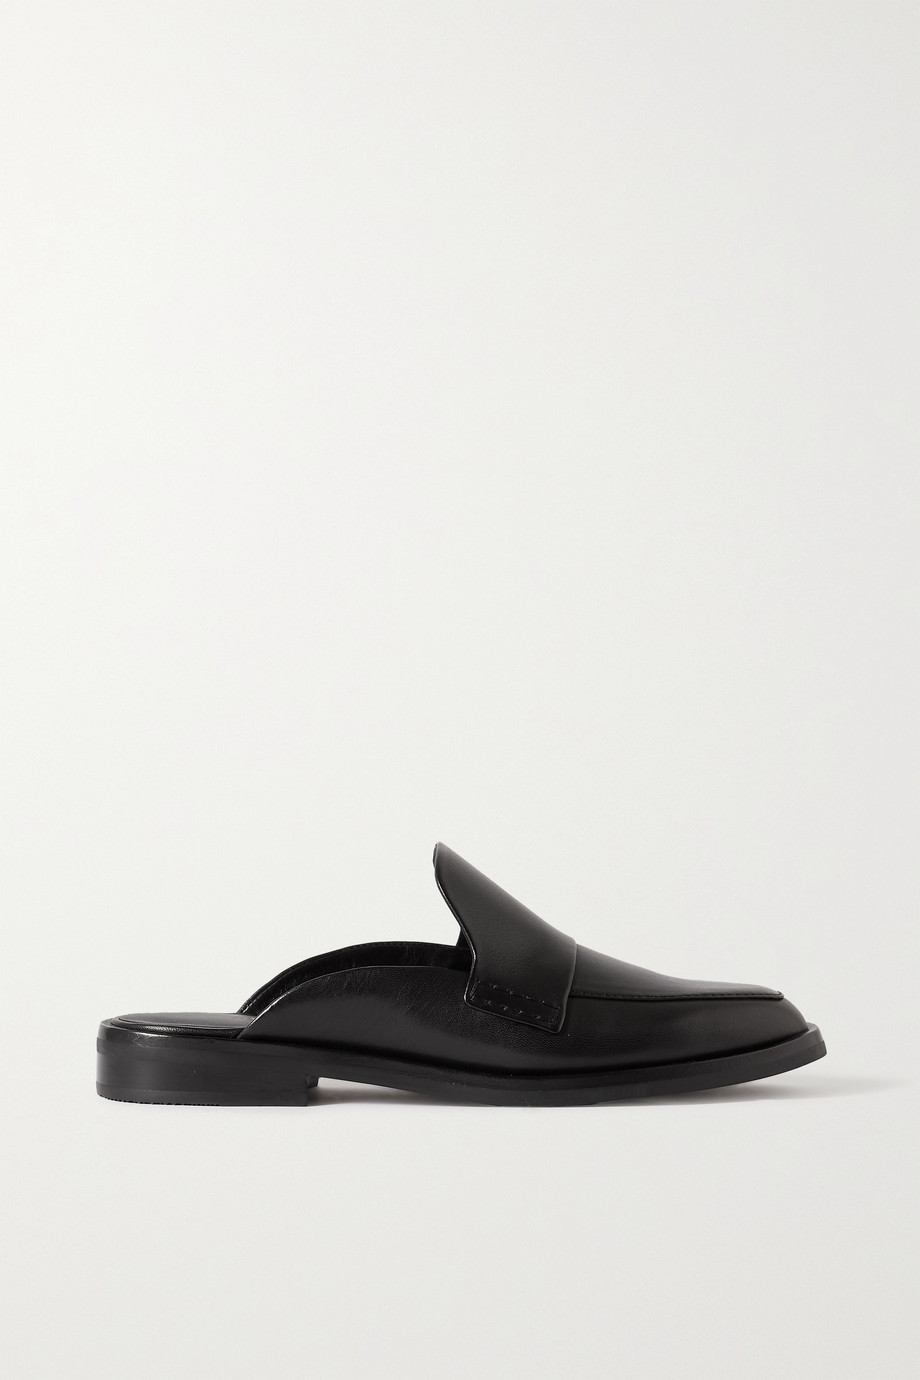 3.1 PHILLIP LIM Alexa leather slippers